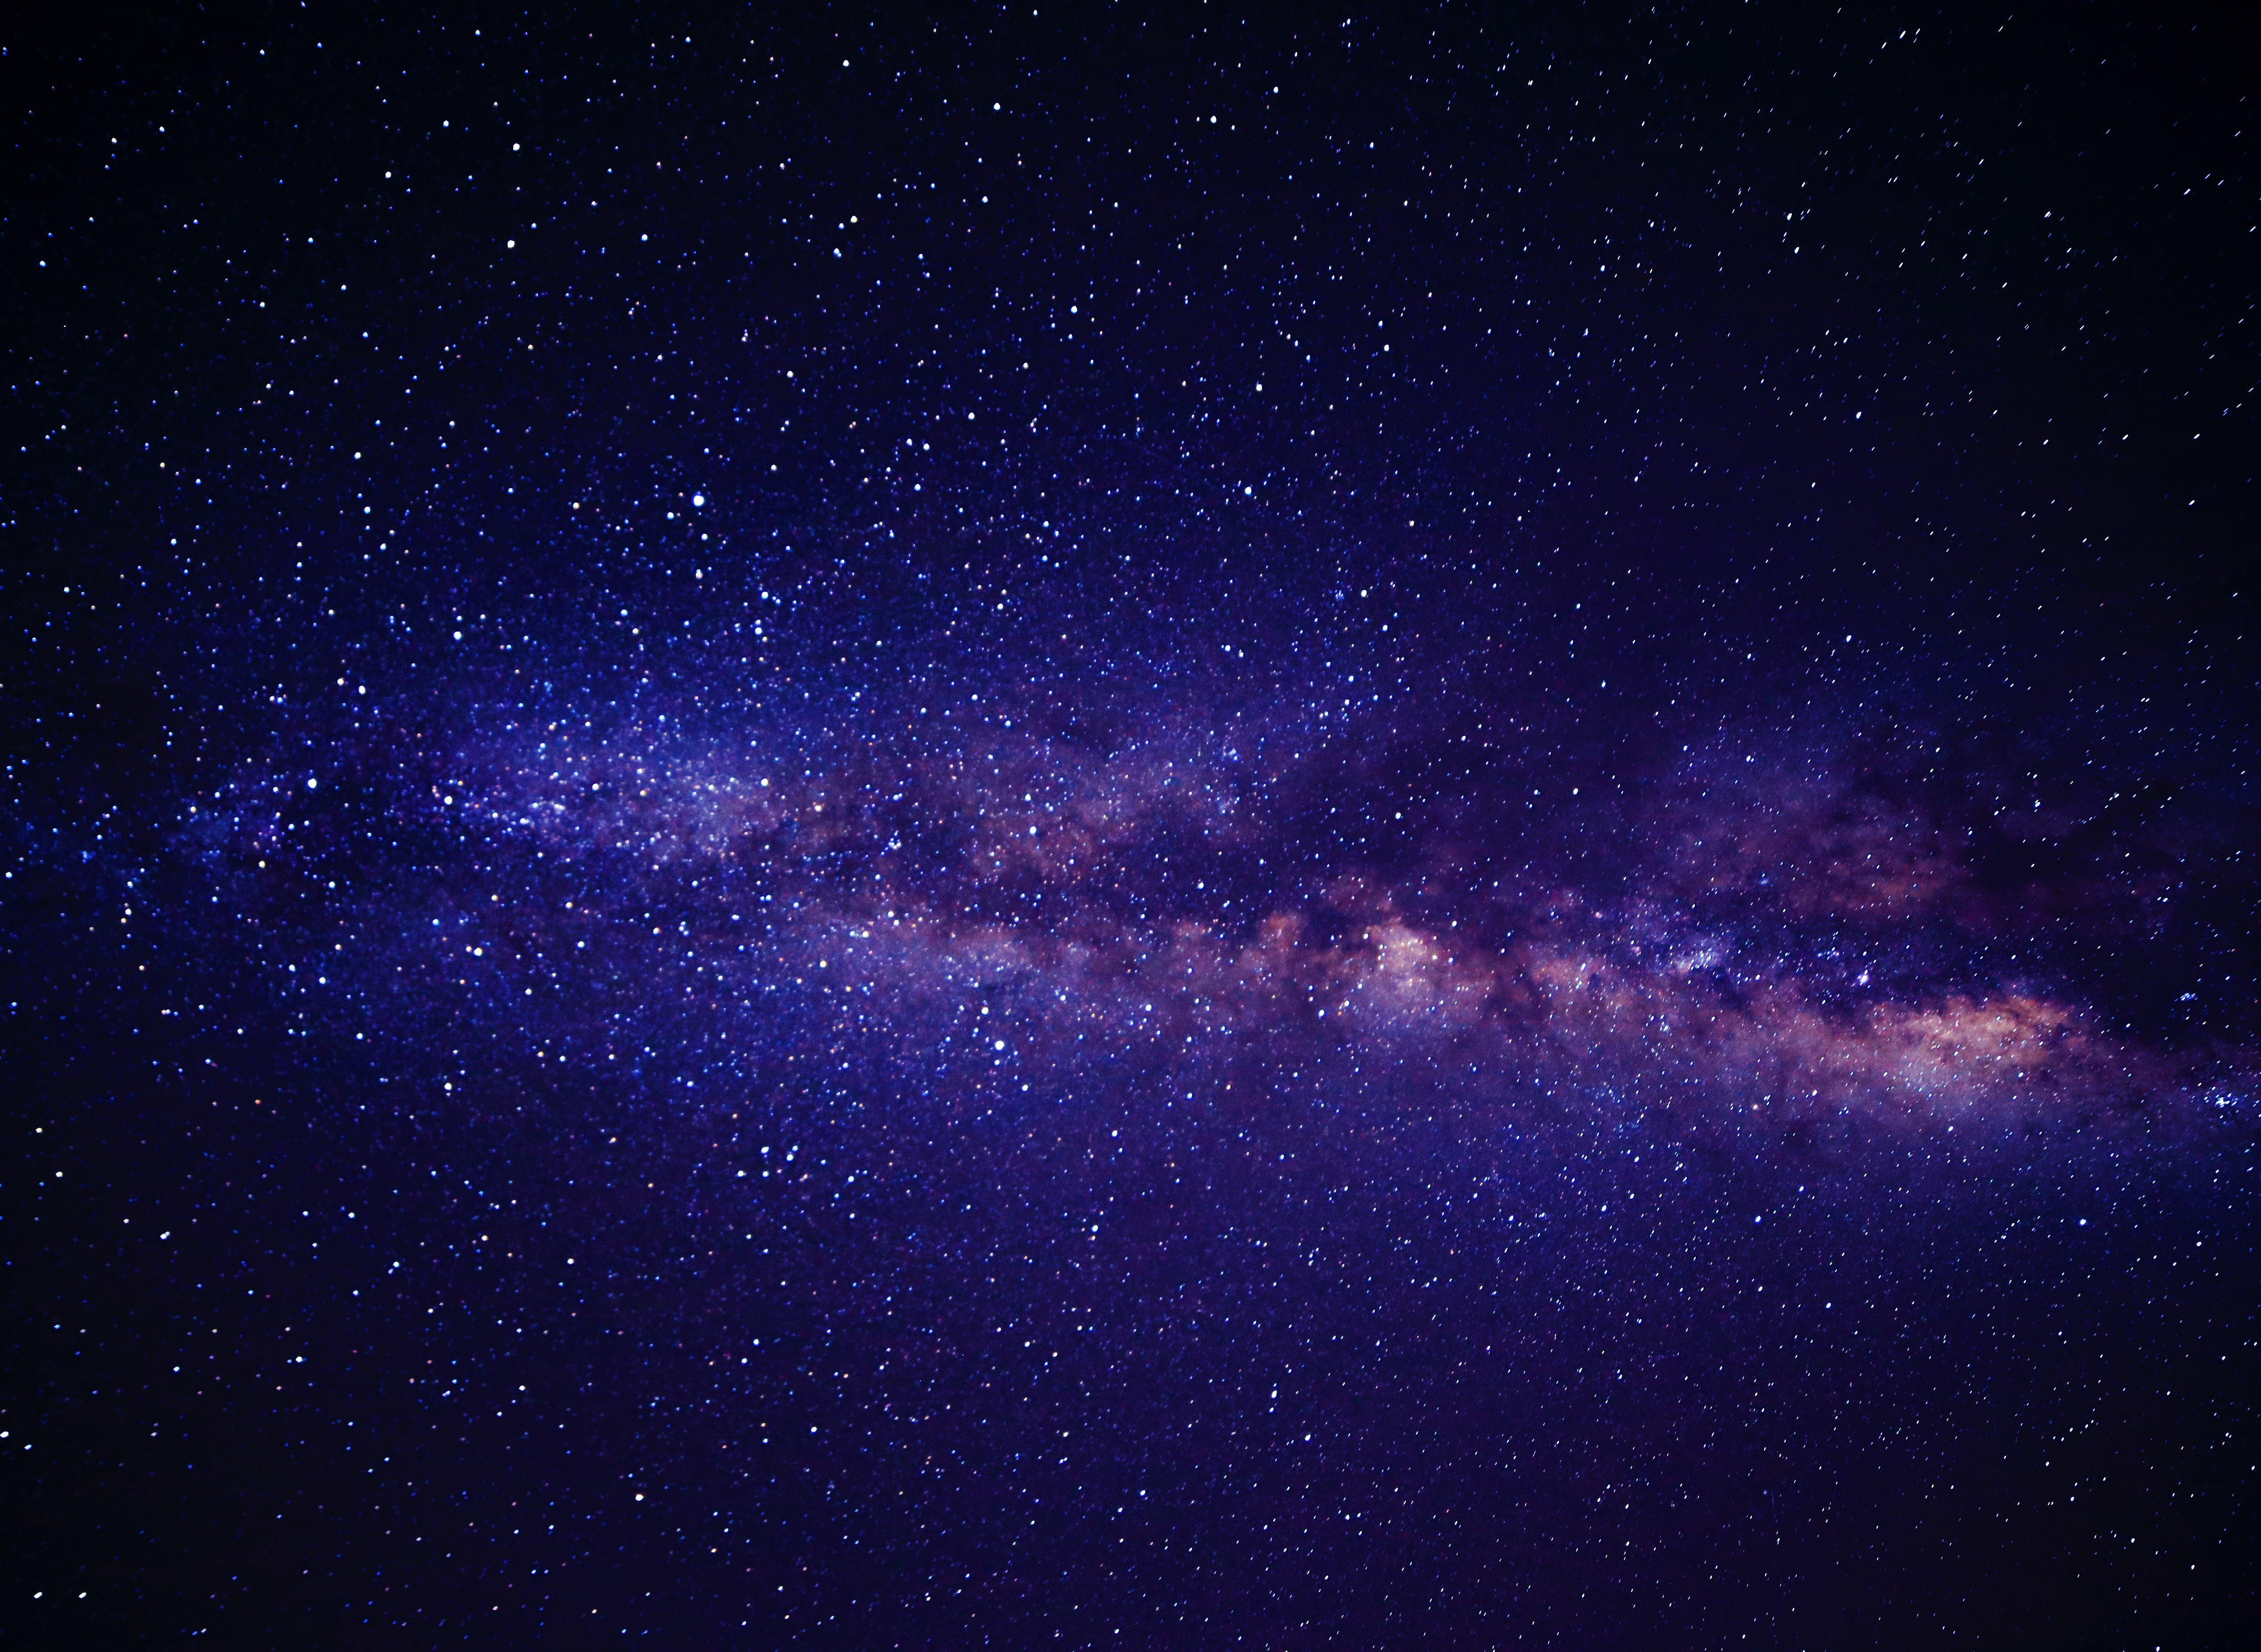 Andromeda galaxy way hd digital universe 4k wallpapers images backgrounds photos and pictures - Galaxy wallpaper for girls ...